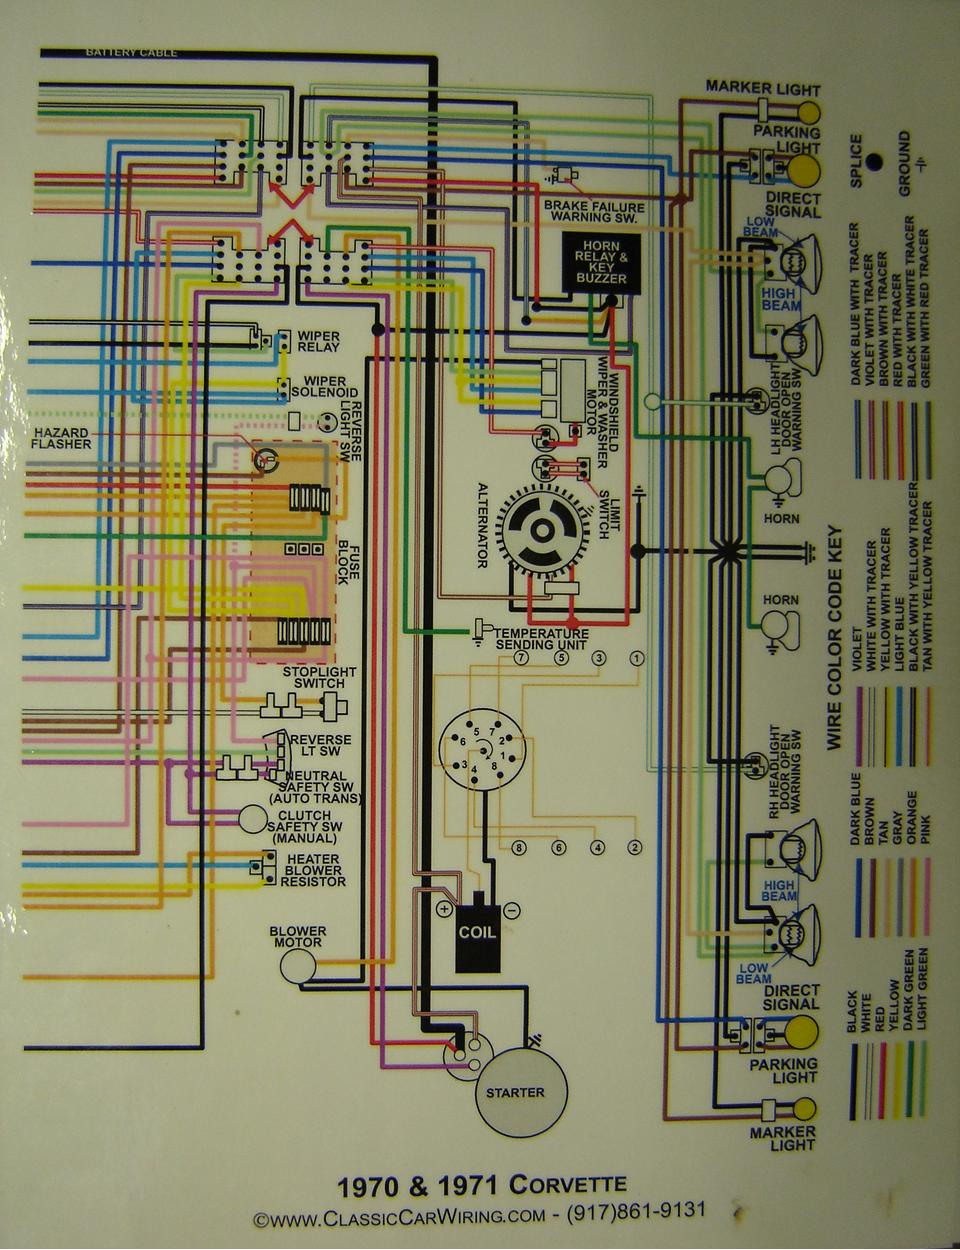 1968 Cj5 Wiring Harness Anyone Have A Pdf Of A 1970 Bb Cpe Wiring Diagram Page 2